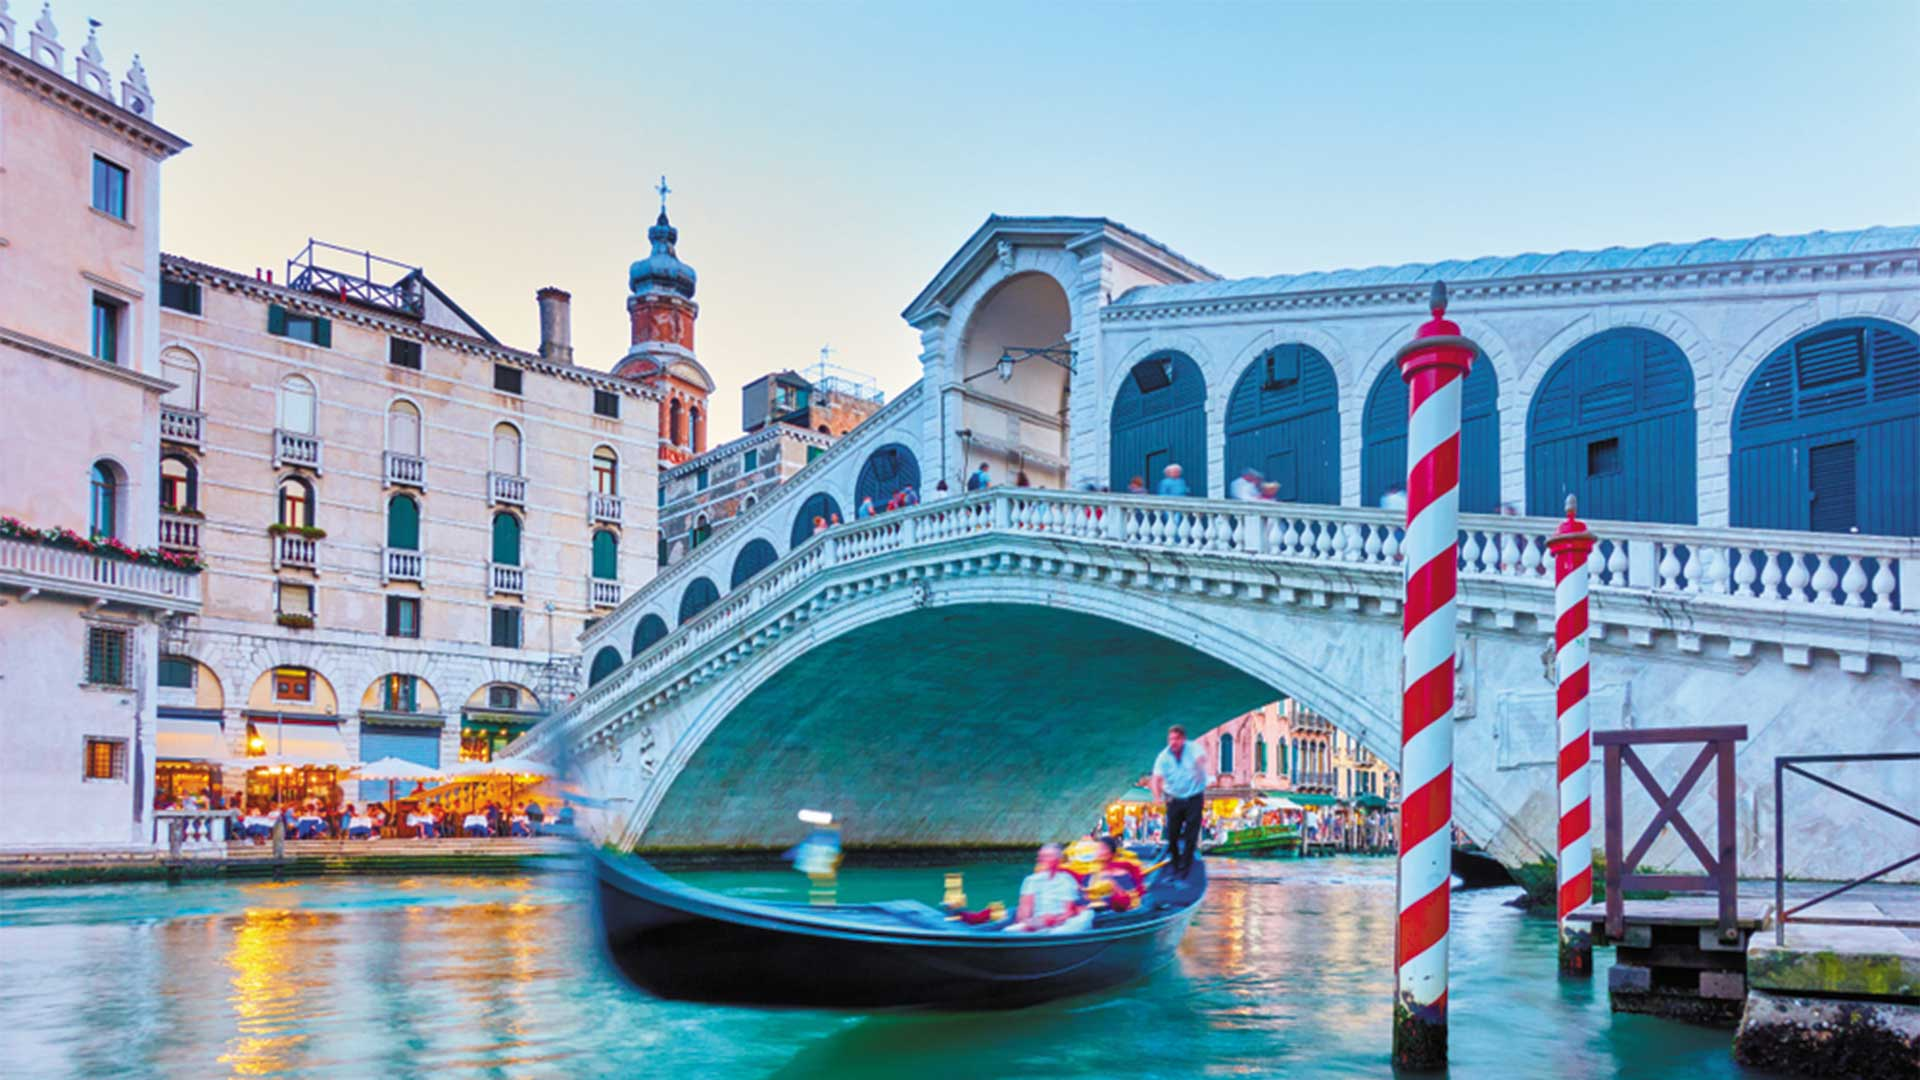 Amazing Venice Vacation Travel Guide Grand Canal Burano Zen Tripstar venice italy St. Marks Square Doges Palace San Polo Ca Rezzonico